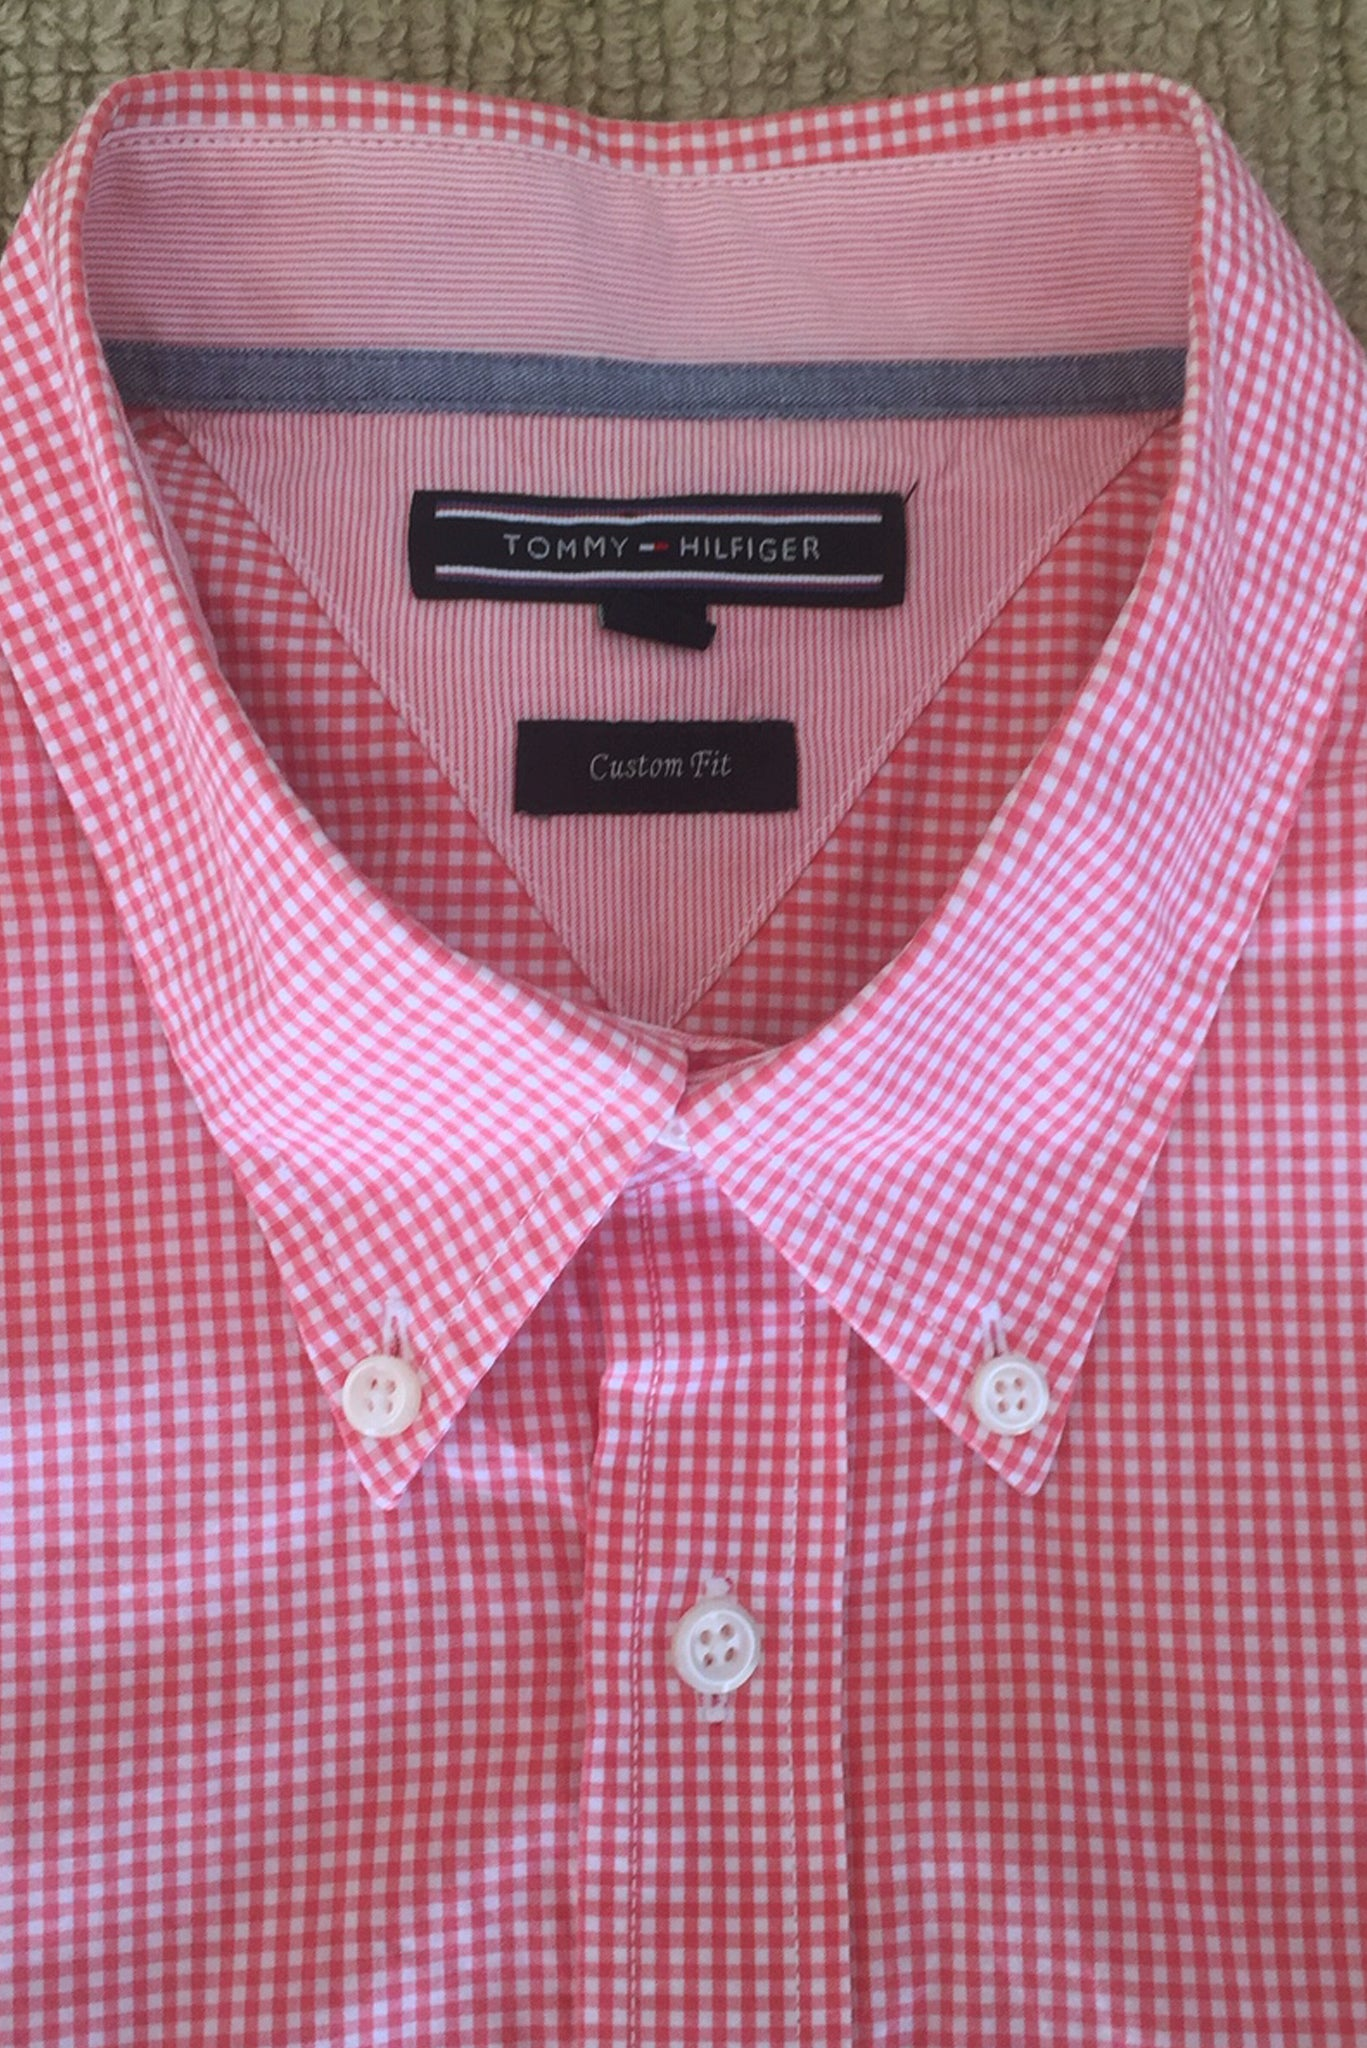 Tommy Hilfiger red check shirt label